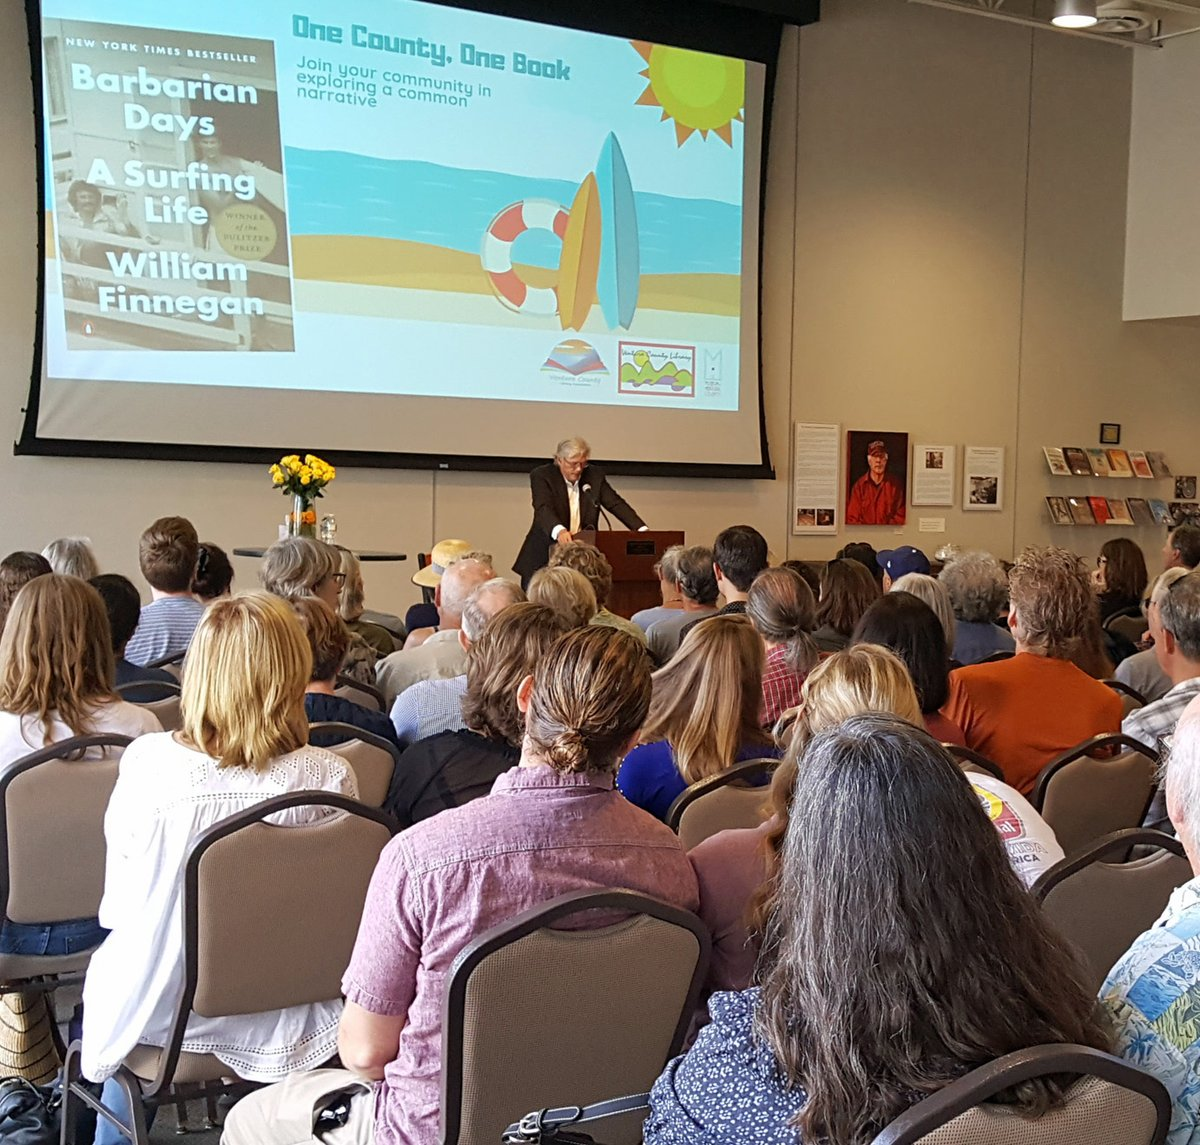 Live crowd for book discussion of Barbarian Days: A Surfing Life by William Finnegan